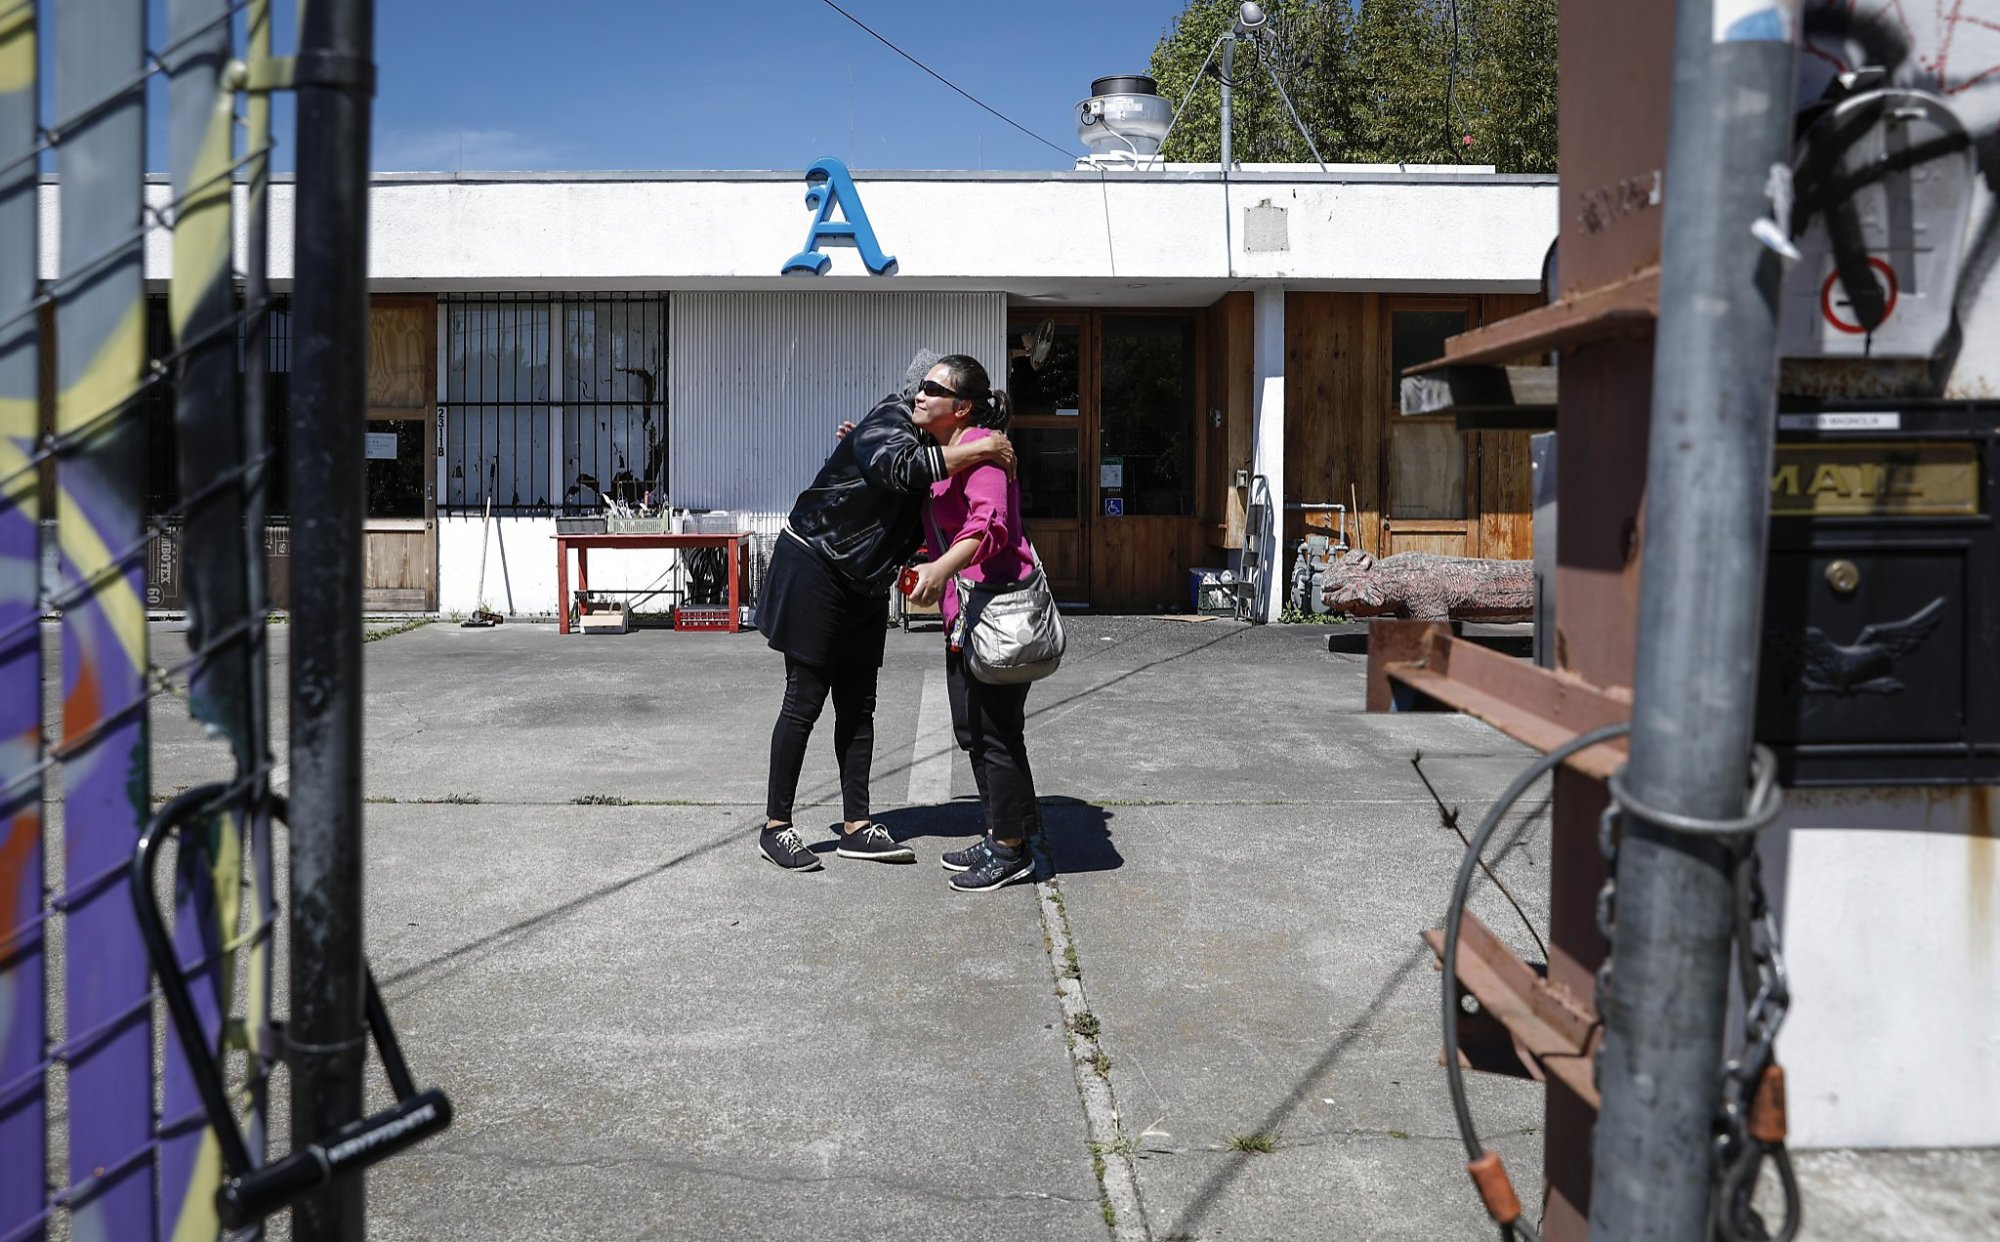 hight resolution of west oakland s family run restaurants struggle as climate shifts sfchronicle com